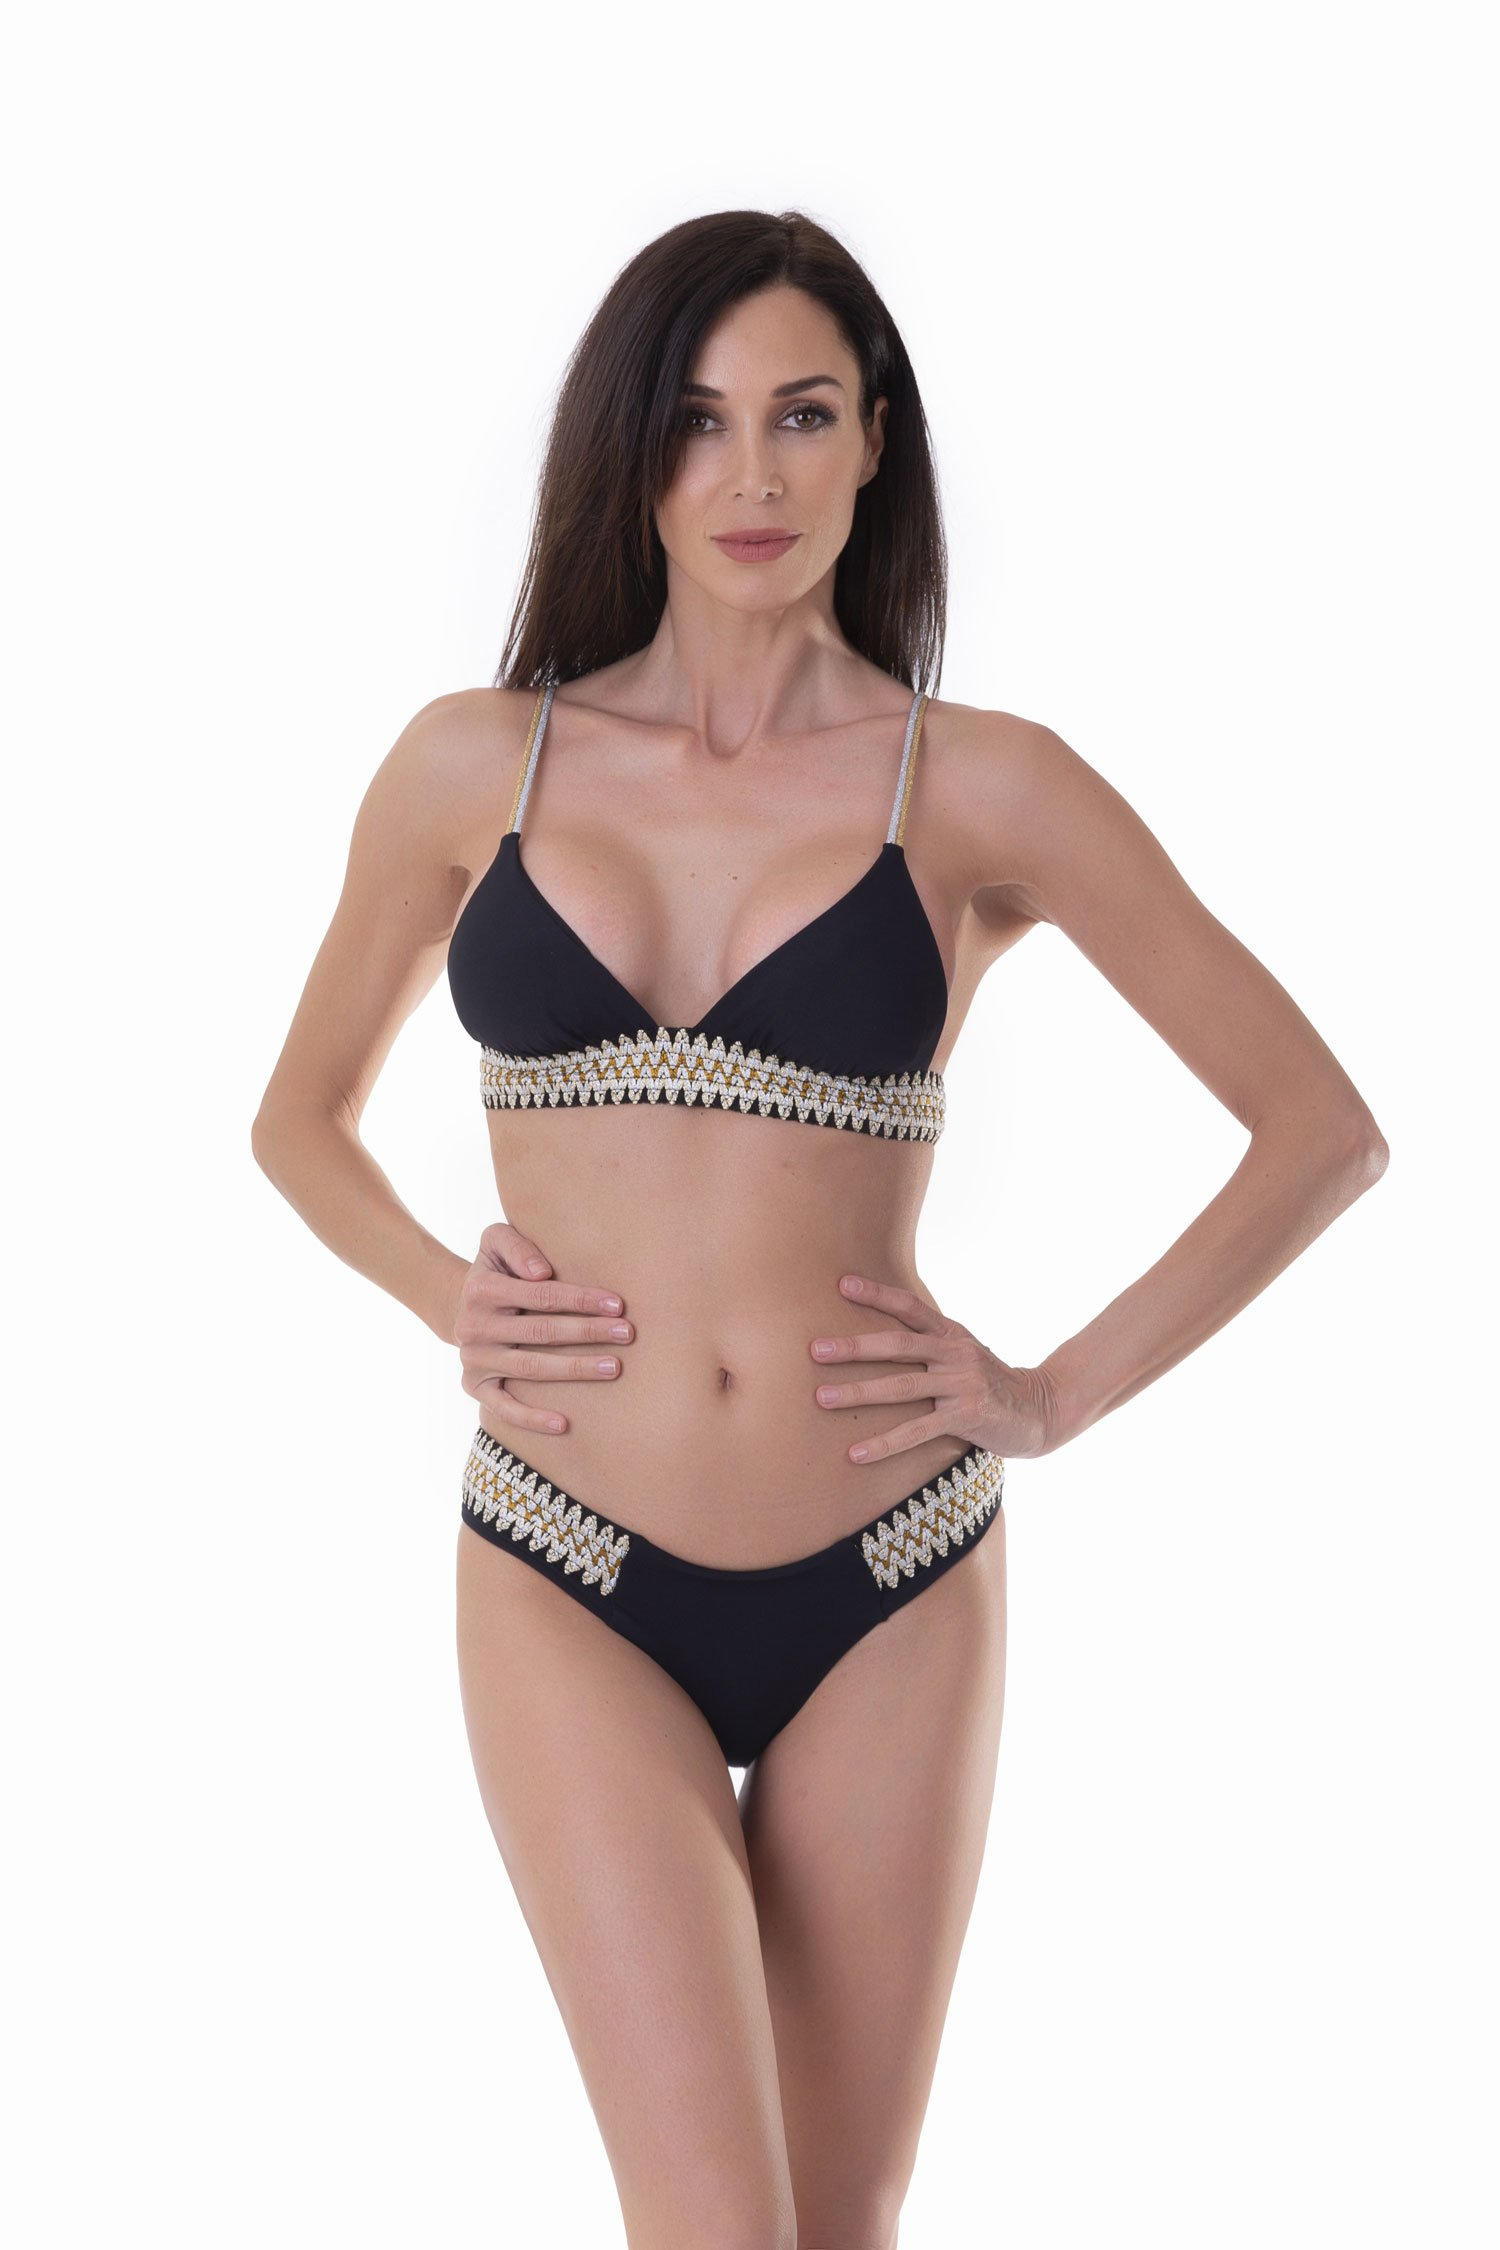 TRIANGLE  BIKINI WITH LUREX ELASTICS - Nero Black 999